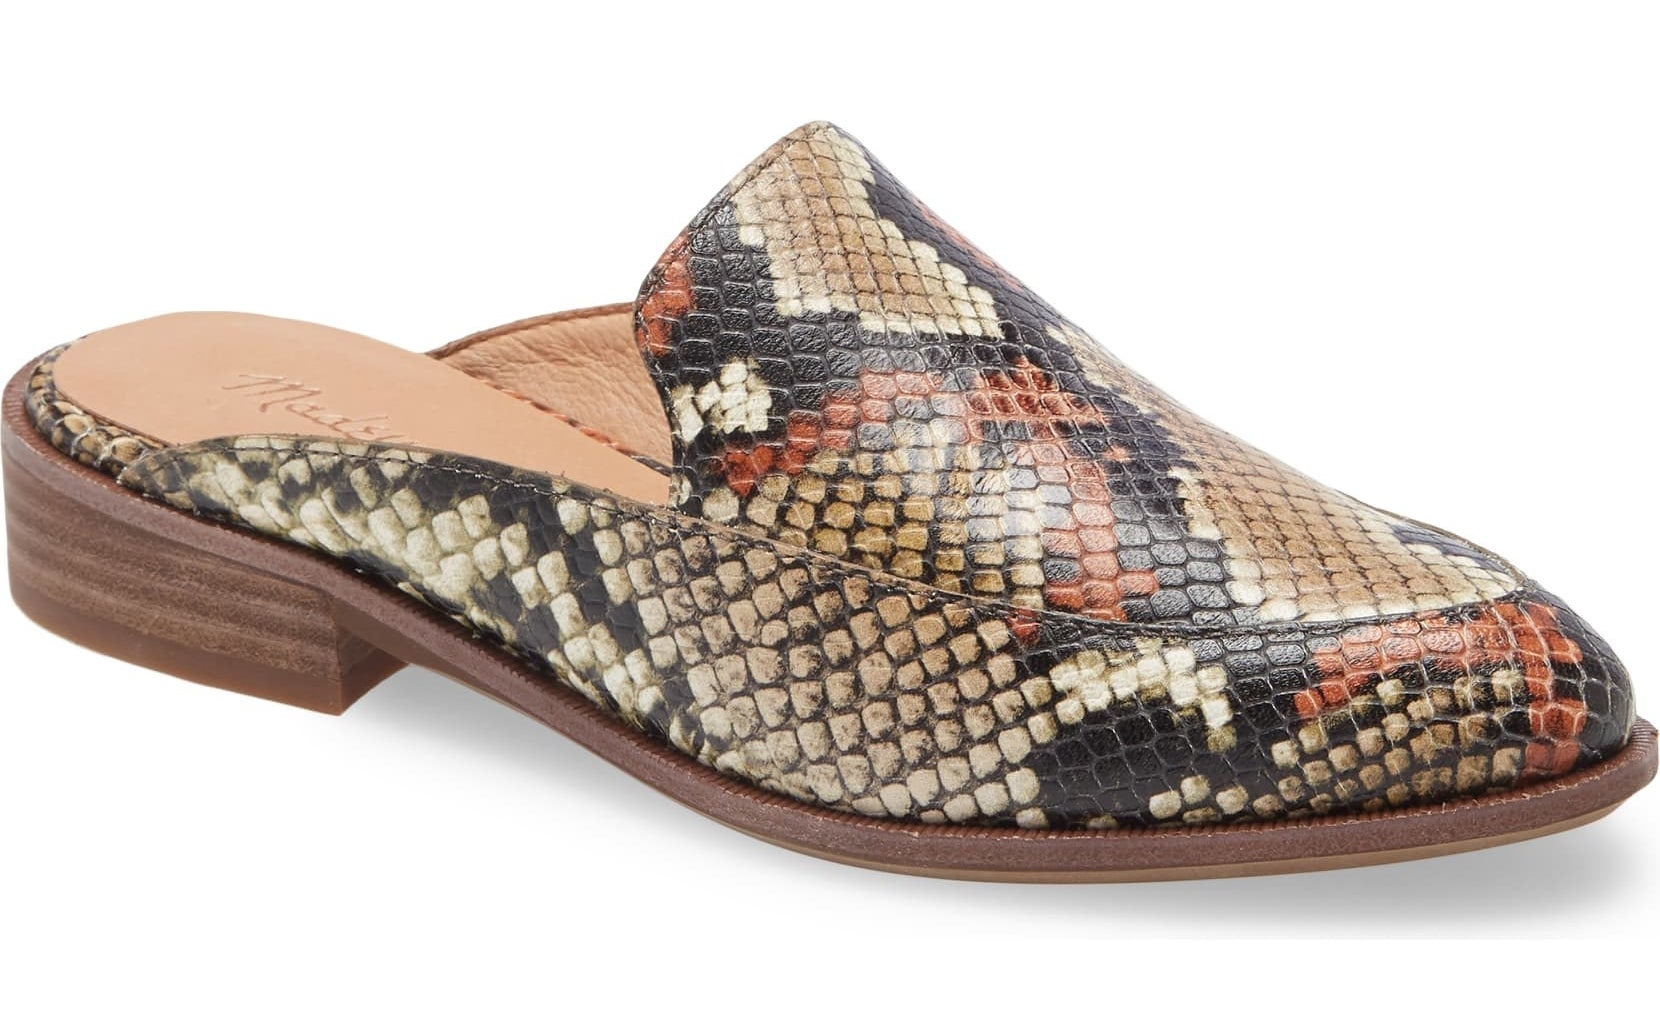 Snake-skin style mules from side